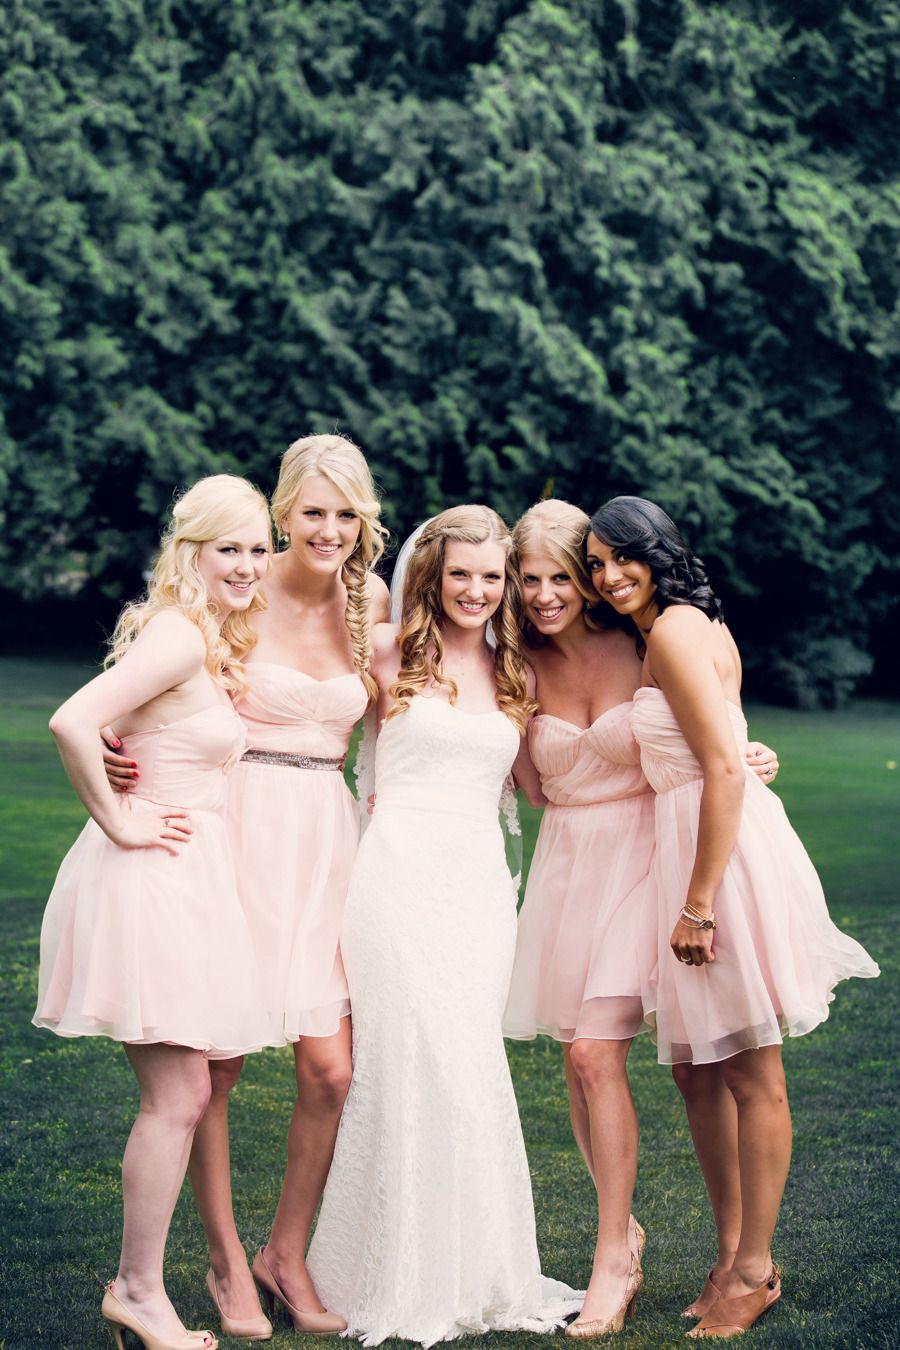 Short Pink Flirty Bridesmaids || On Style Me Pretty Weddings: http://www.StyleMePretty.com/canada-weddings/2014/02/13/romantic-west-vancouver-wedding/  Jamie Lauren Photography